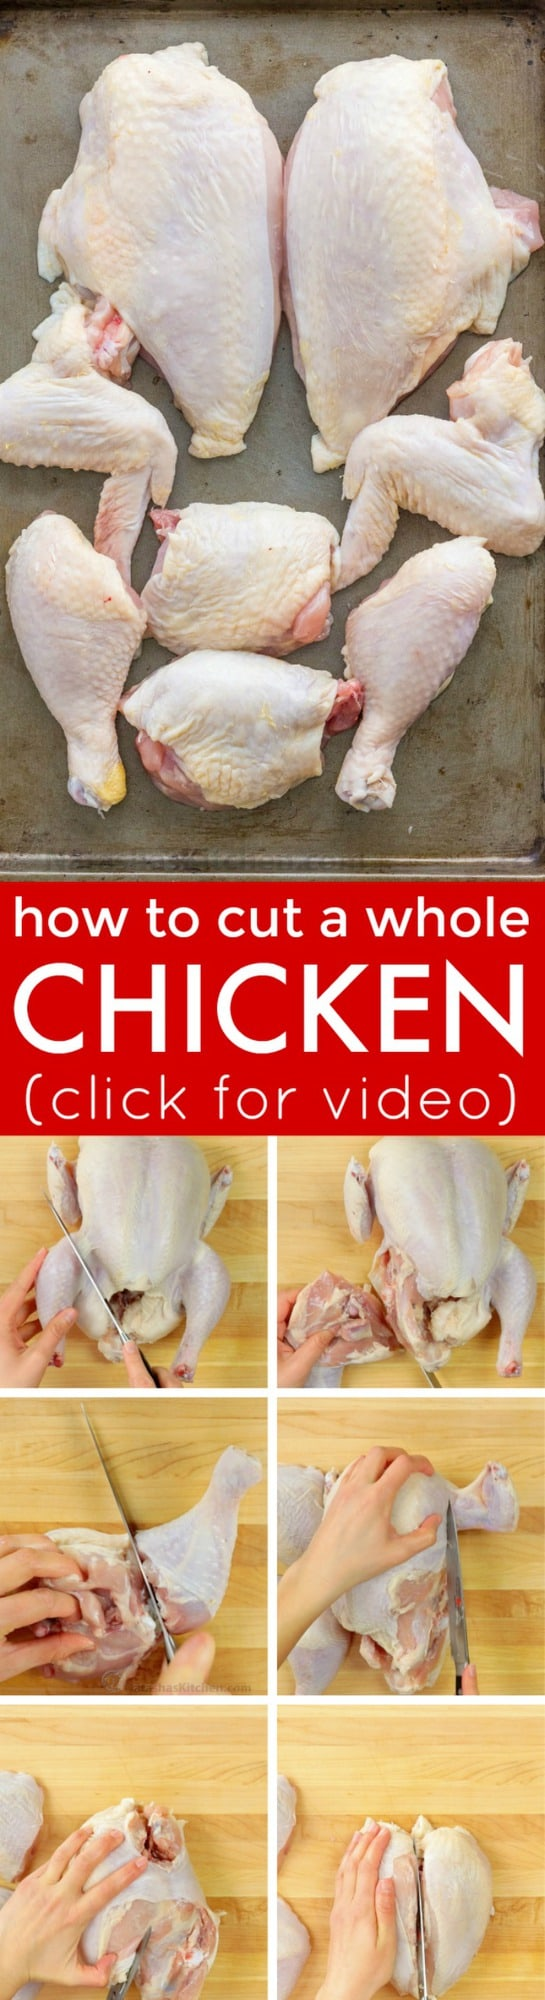 Cutting a whole chicken is easy! Video tutorial on how to cut up a whole chicken! Save money and use the carcass for the homemade chicken stock! | natashaskitchen.com